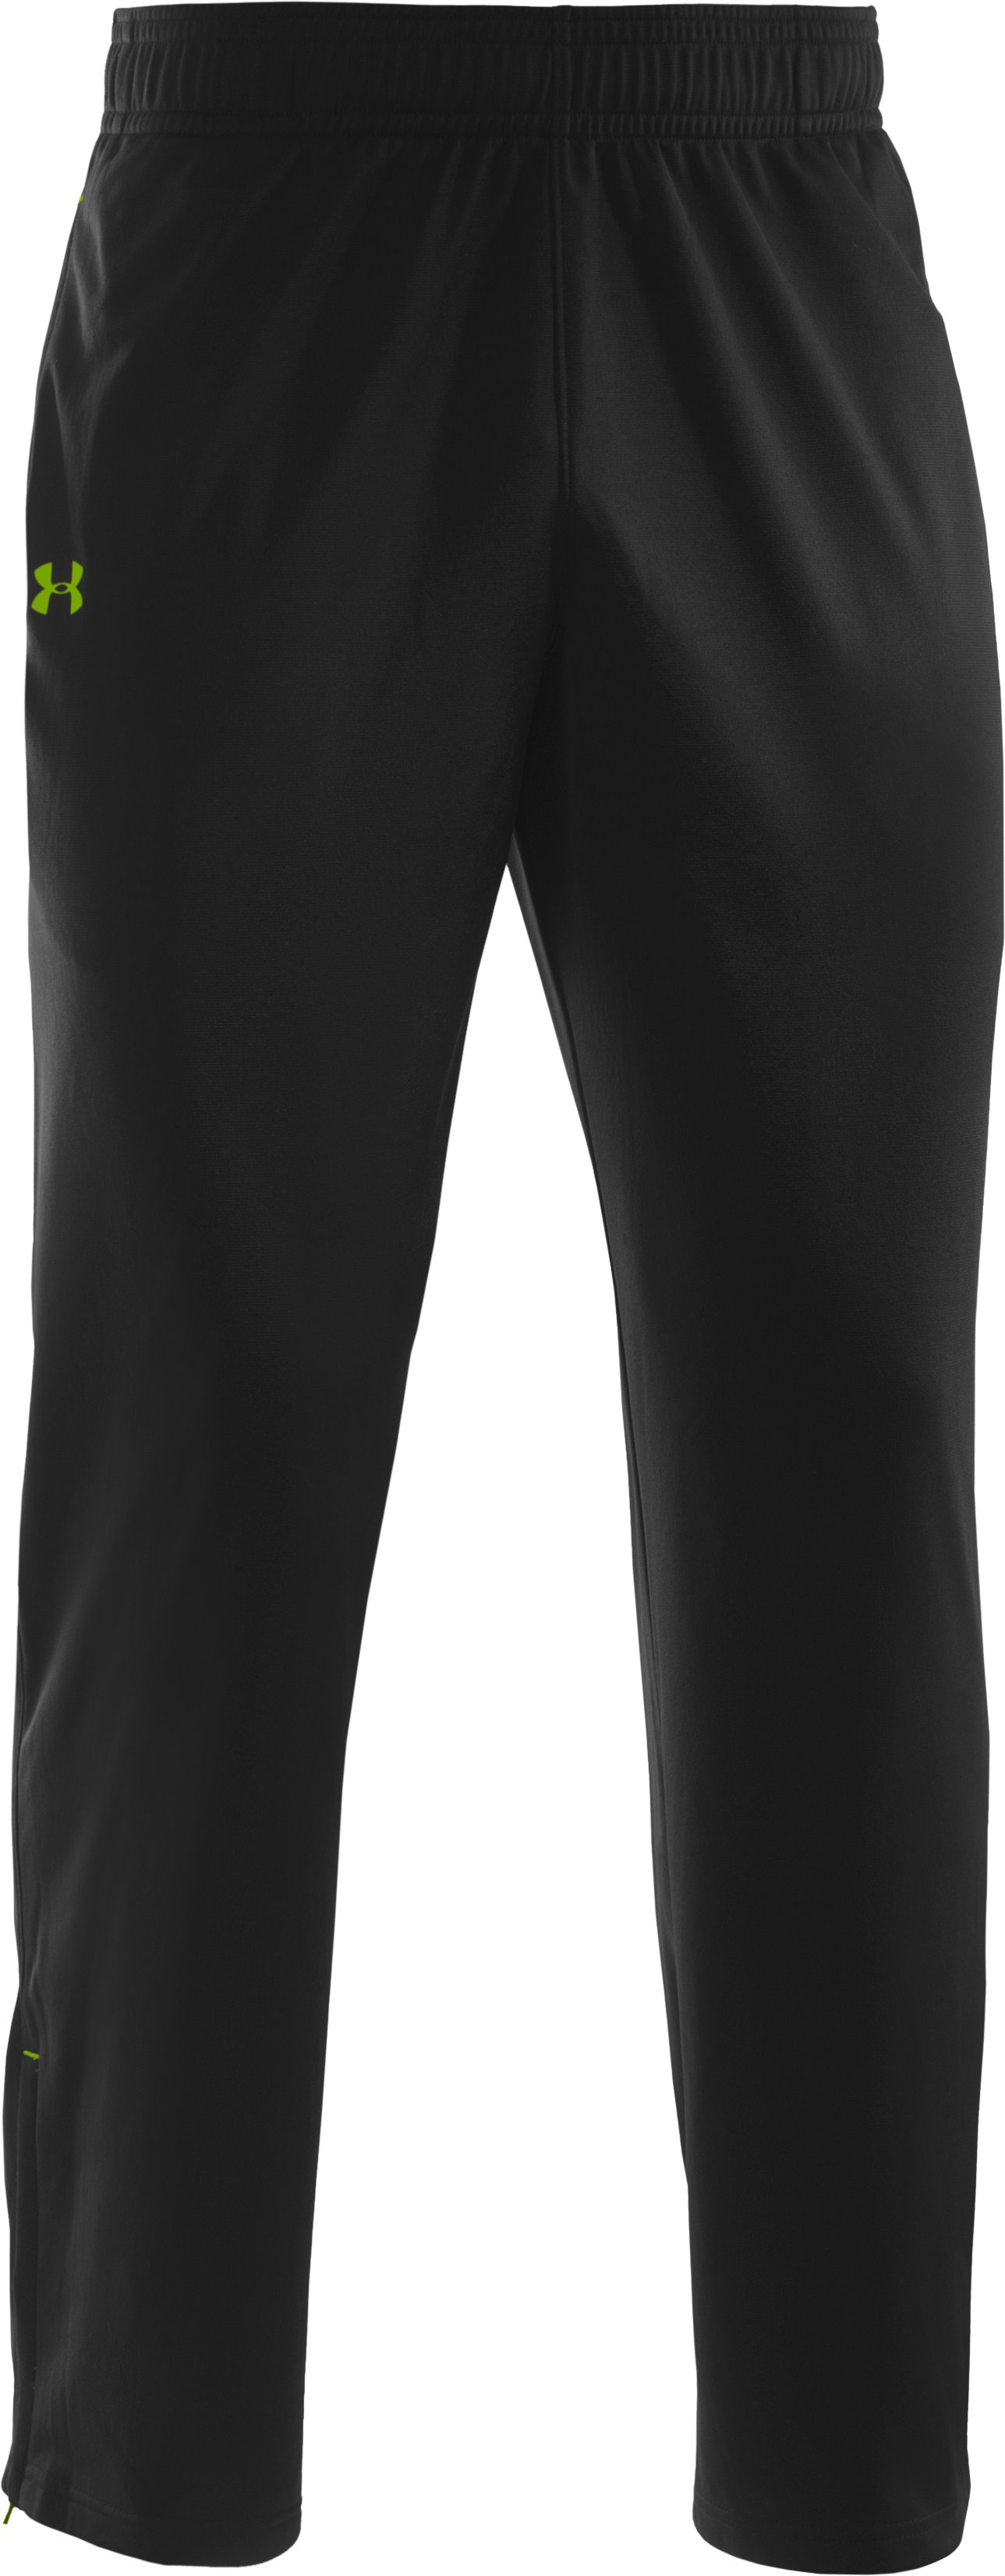 Men's UA Brawn Warm-Up Pants, Black